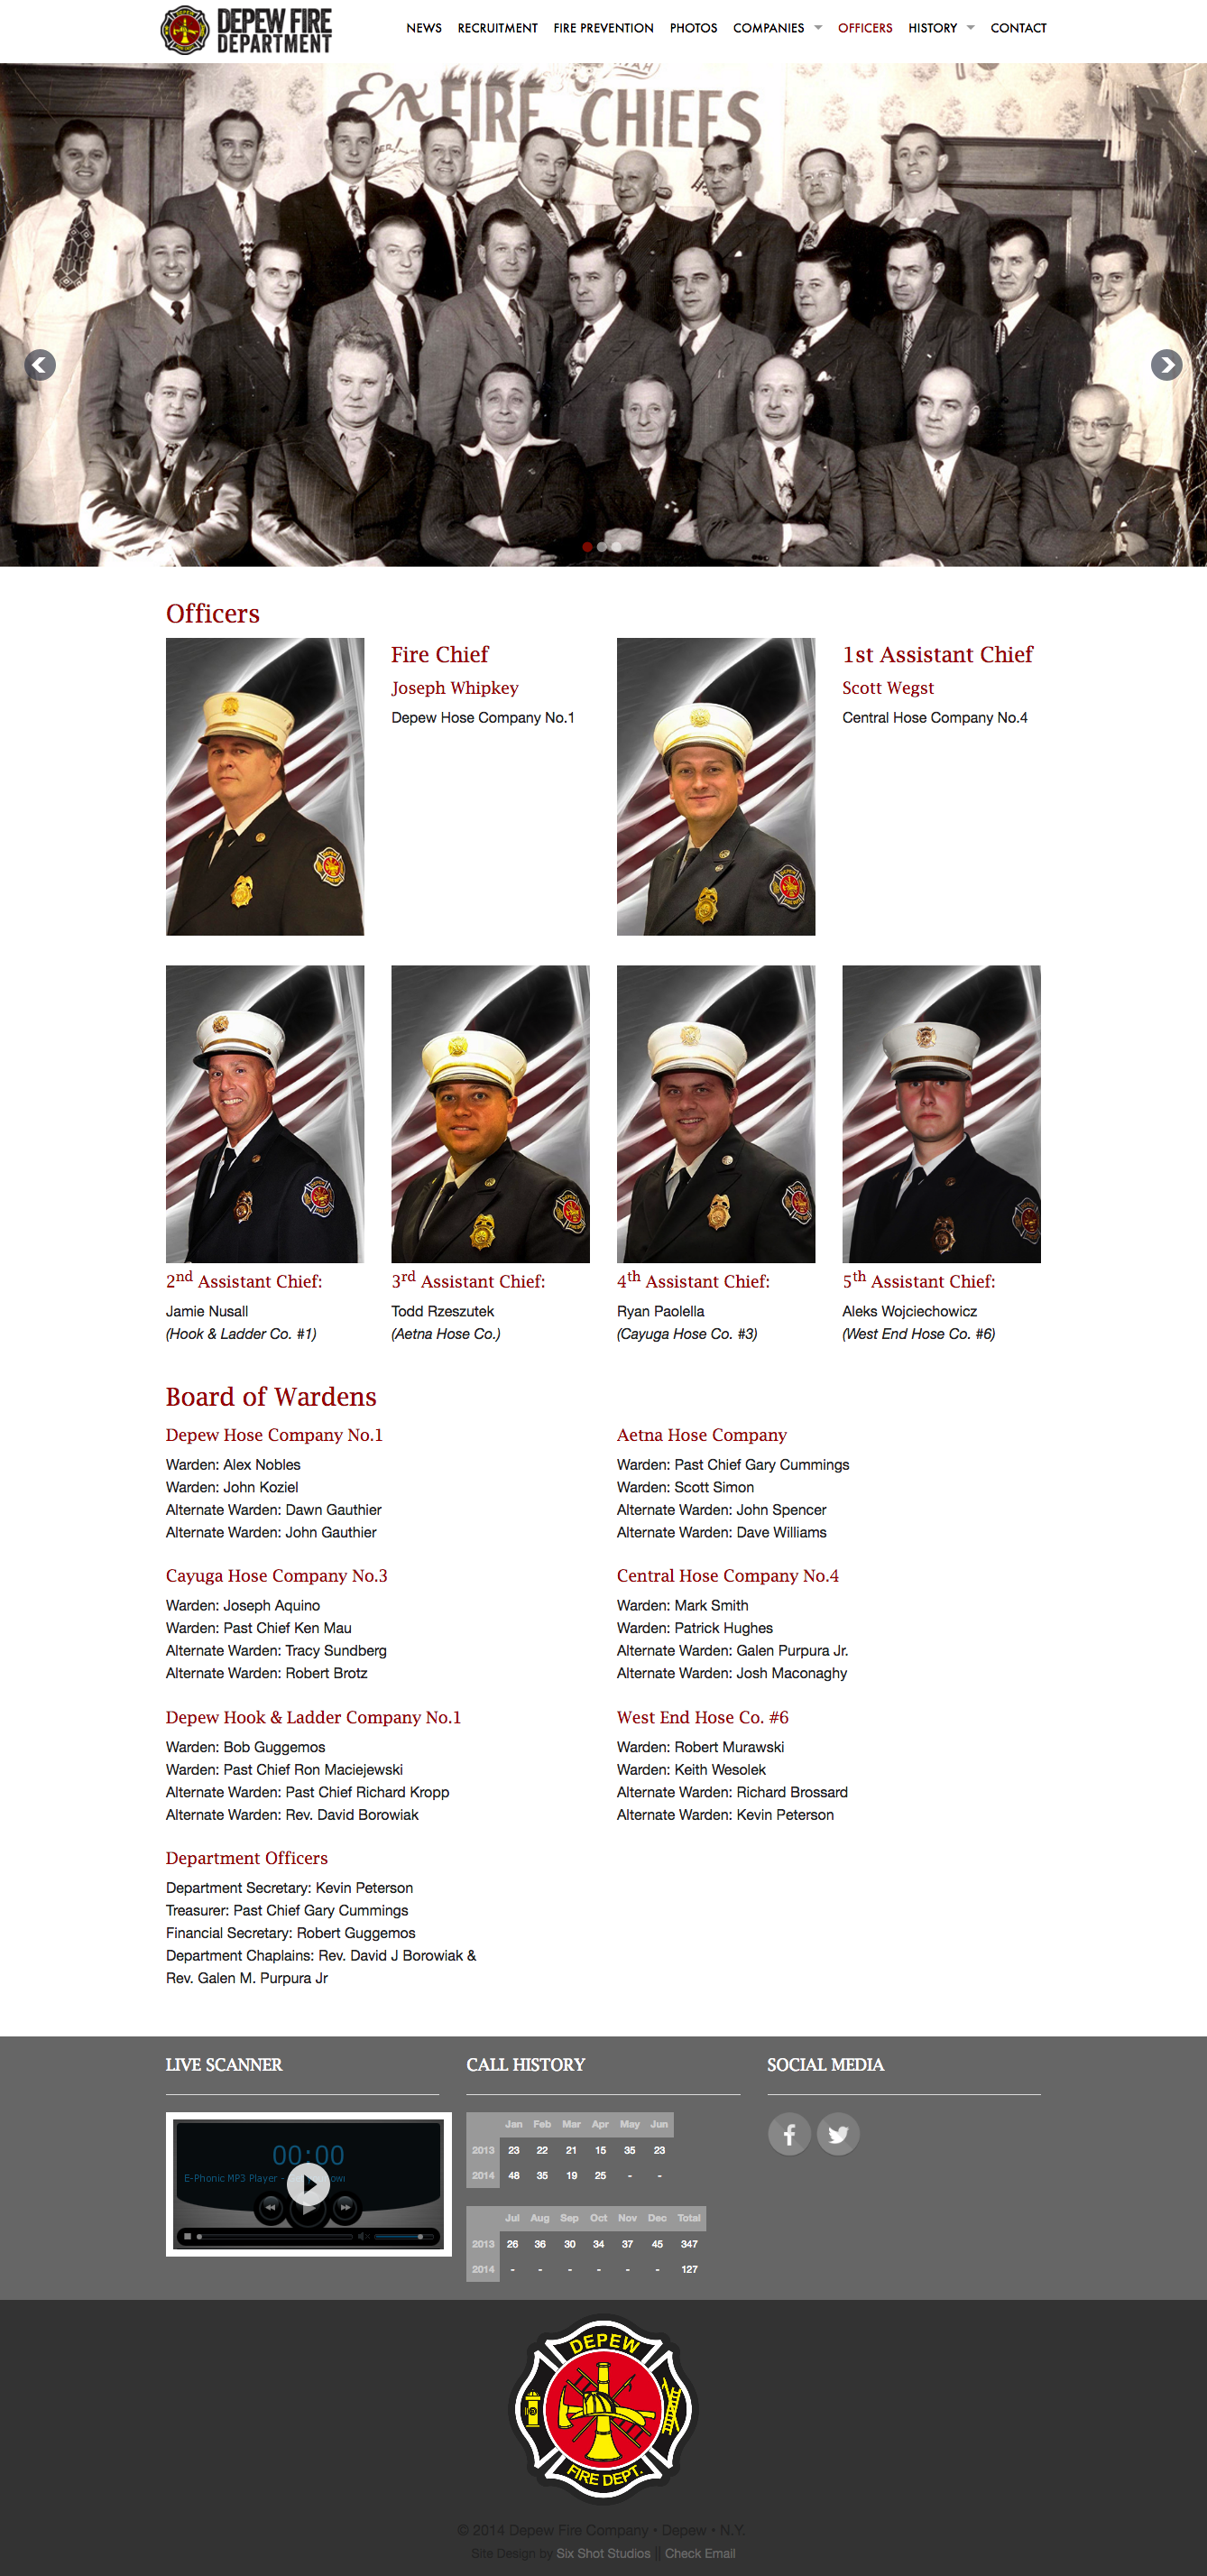 Depew Fire Website